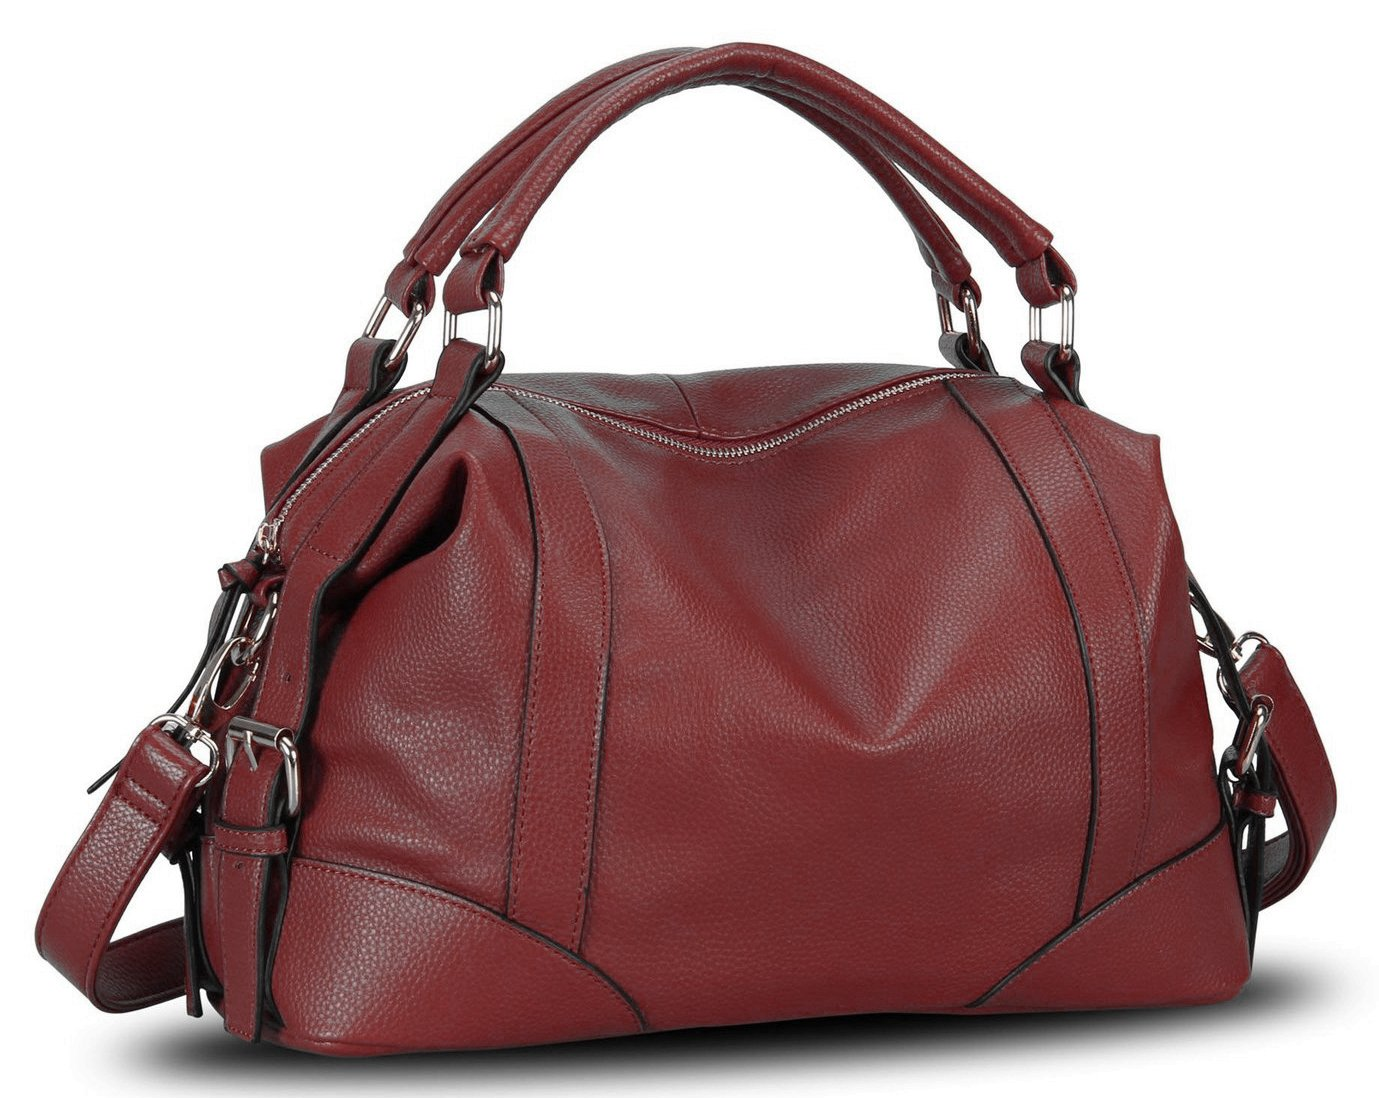 Mn&Sue Punk Motorcycle PU Leather Top Handle Boston Barrel Slouchy Hobo Satchel Convertible Doctor Purse (Wine Red)